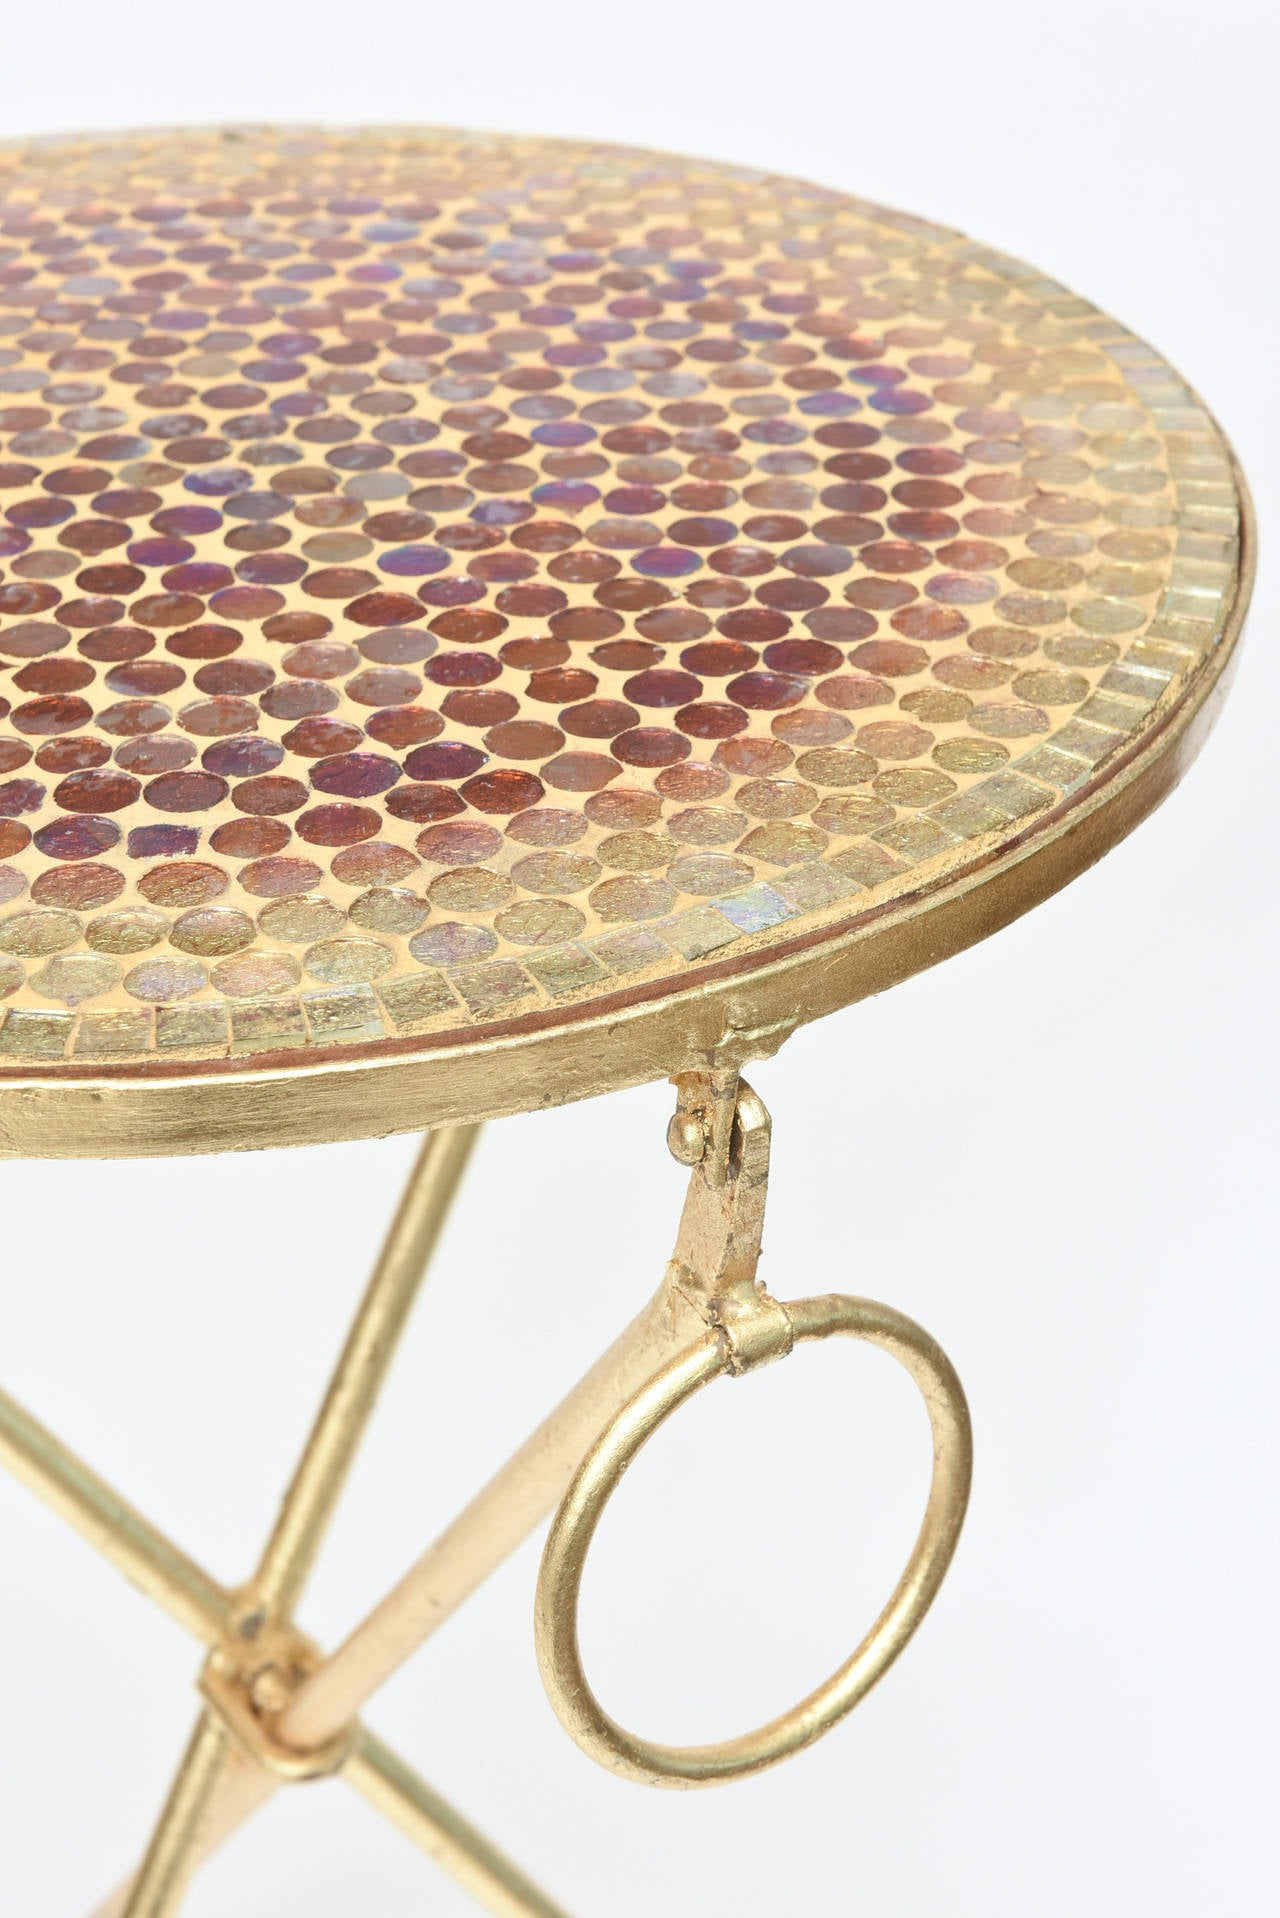 Pair Of Italian Vintage Gold Leaf And Mosaic Glass Tripod Side Tables At 1stdibs